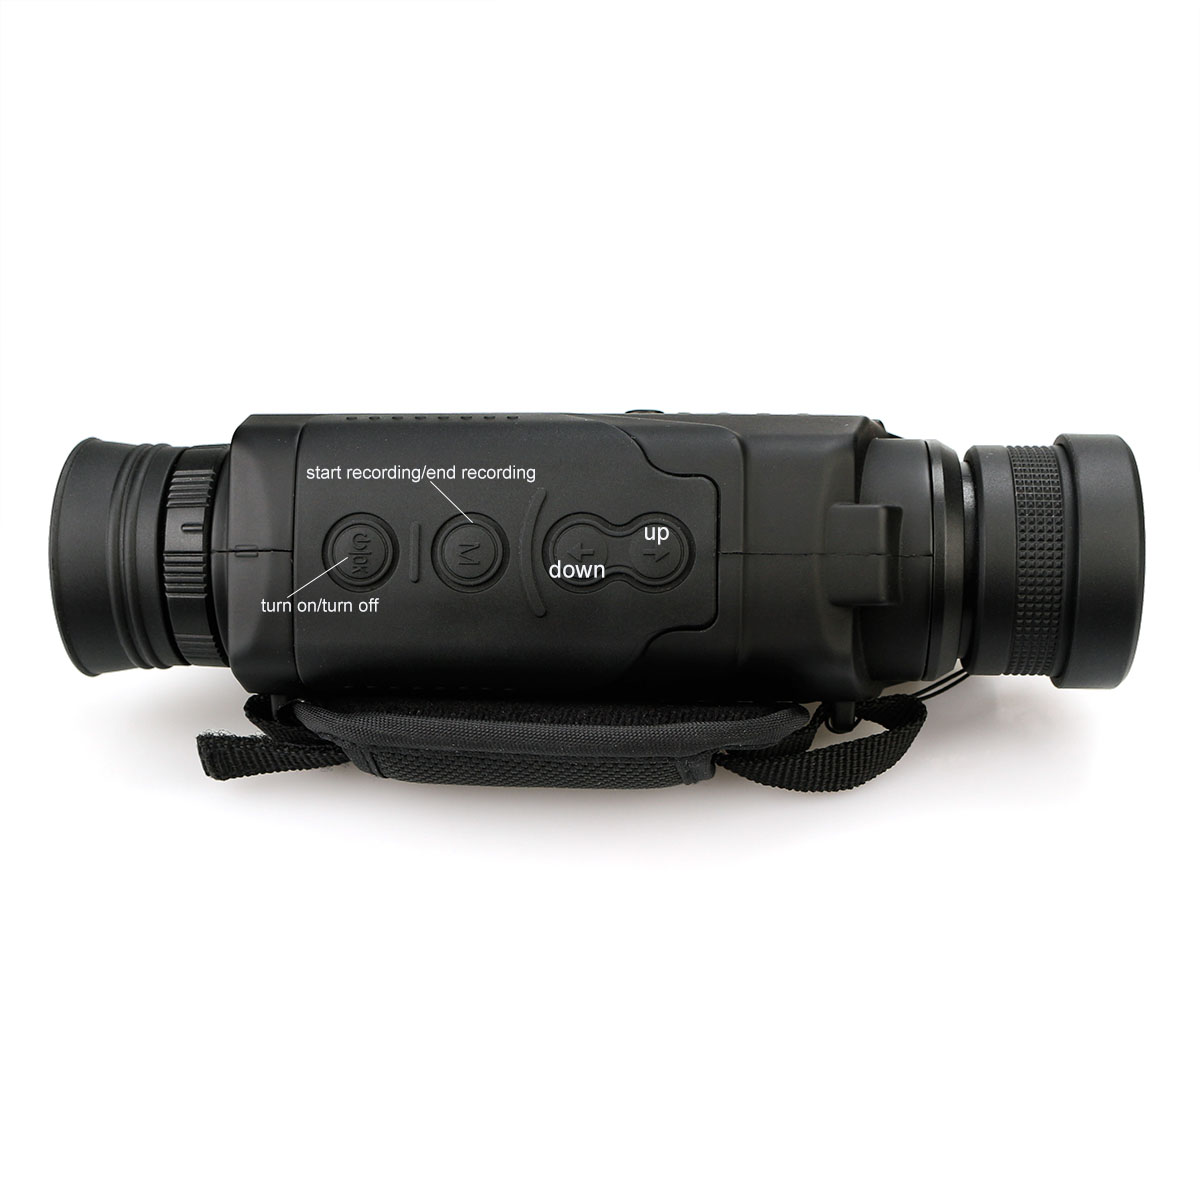 Svbony SV52 Night Vision.jpg